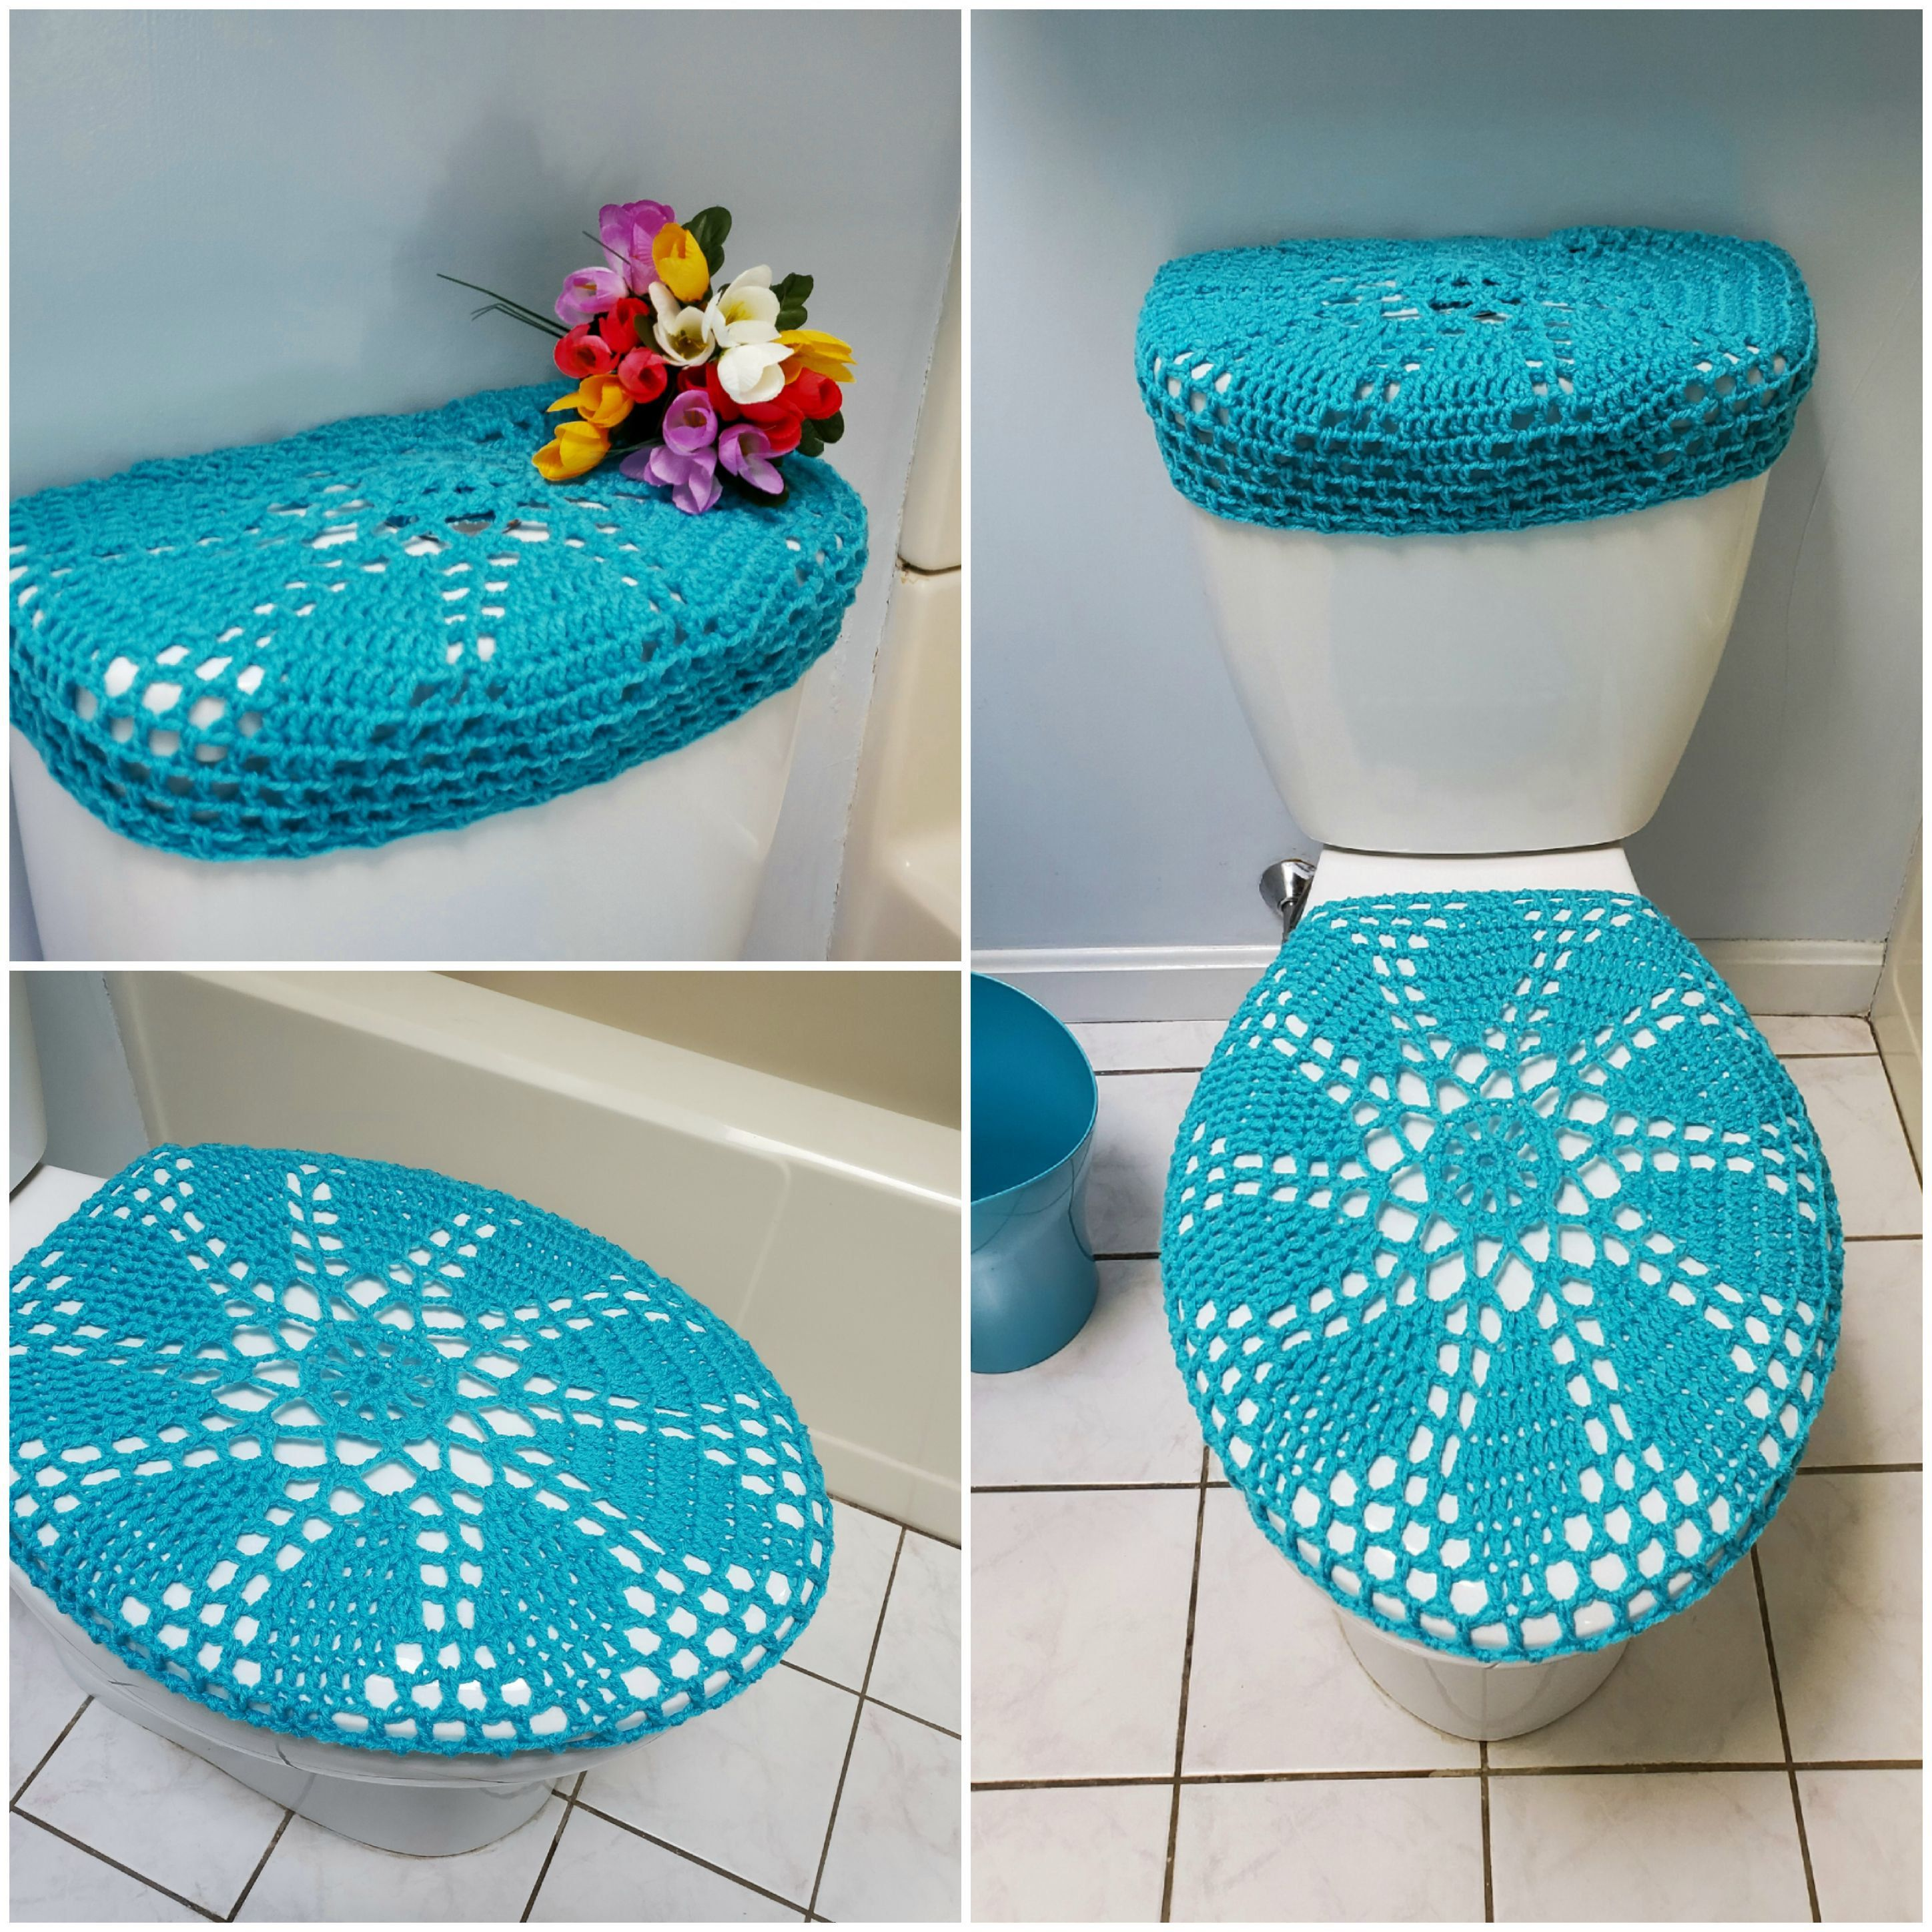 Crochet Toilet Seat Cover Or Tank Lid Cover Turqua Tsc28i Or